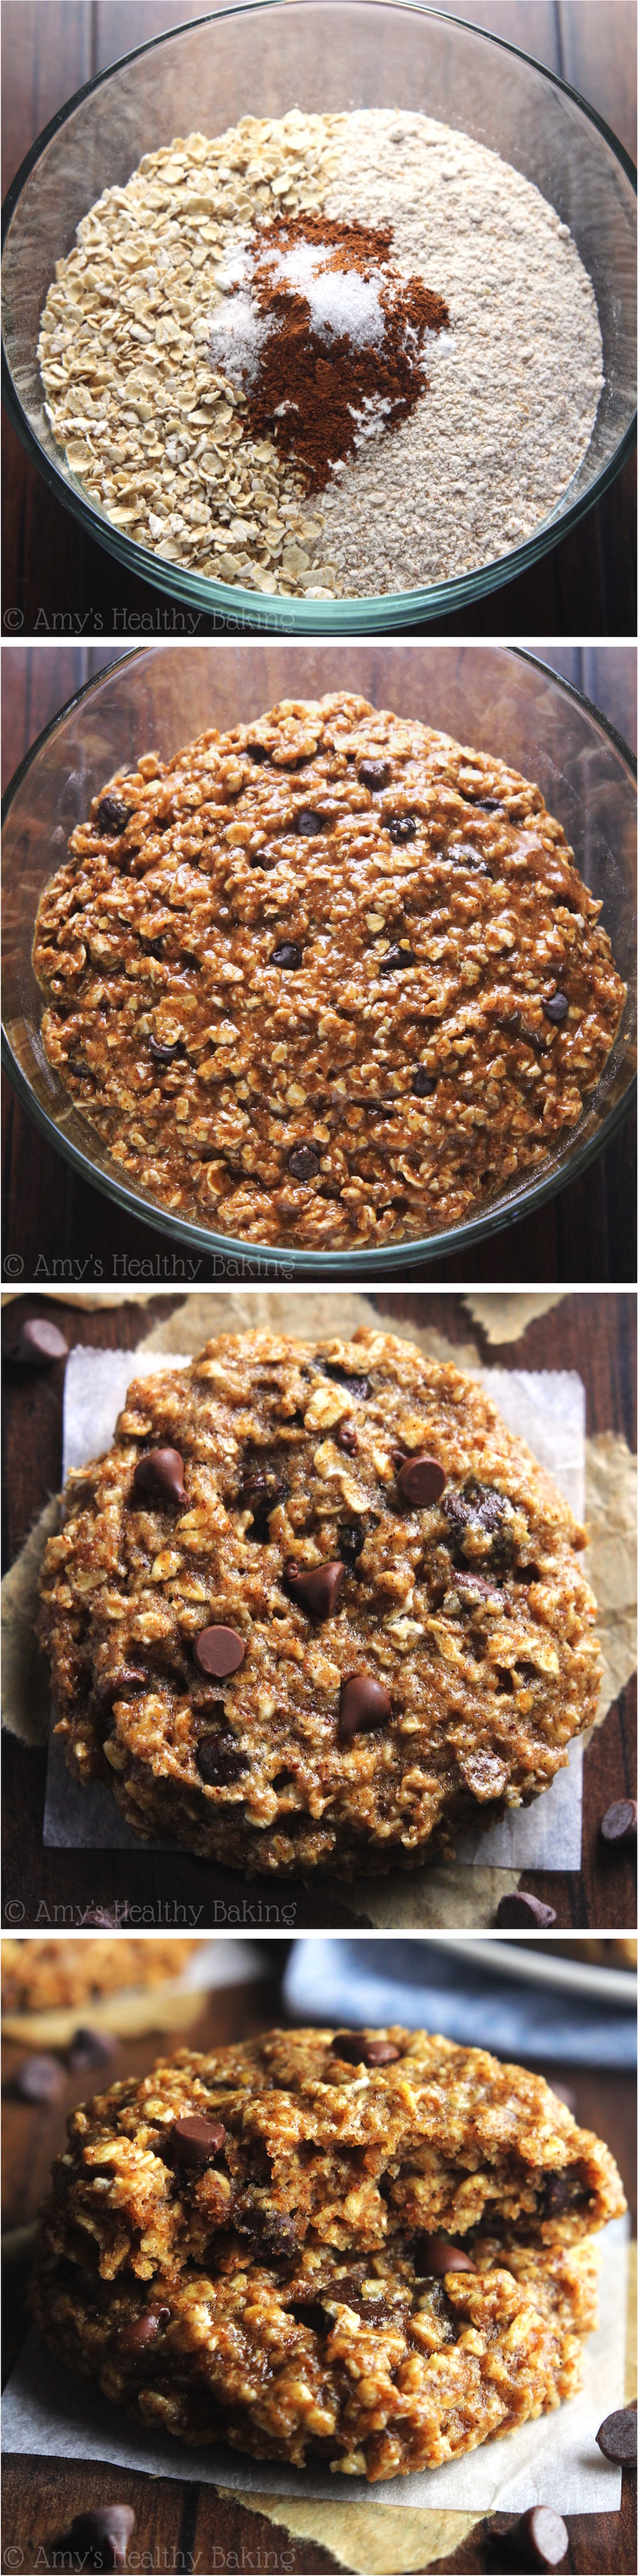 Clean-Eating Chocolate Chip Almond Butter Oatmeal Cookies -- these skinny cookies don't 3634e healthy at all! You'll never need another oatmeal cookie recipe again!